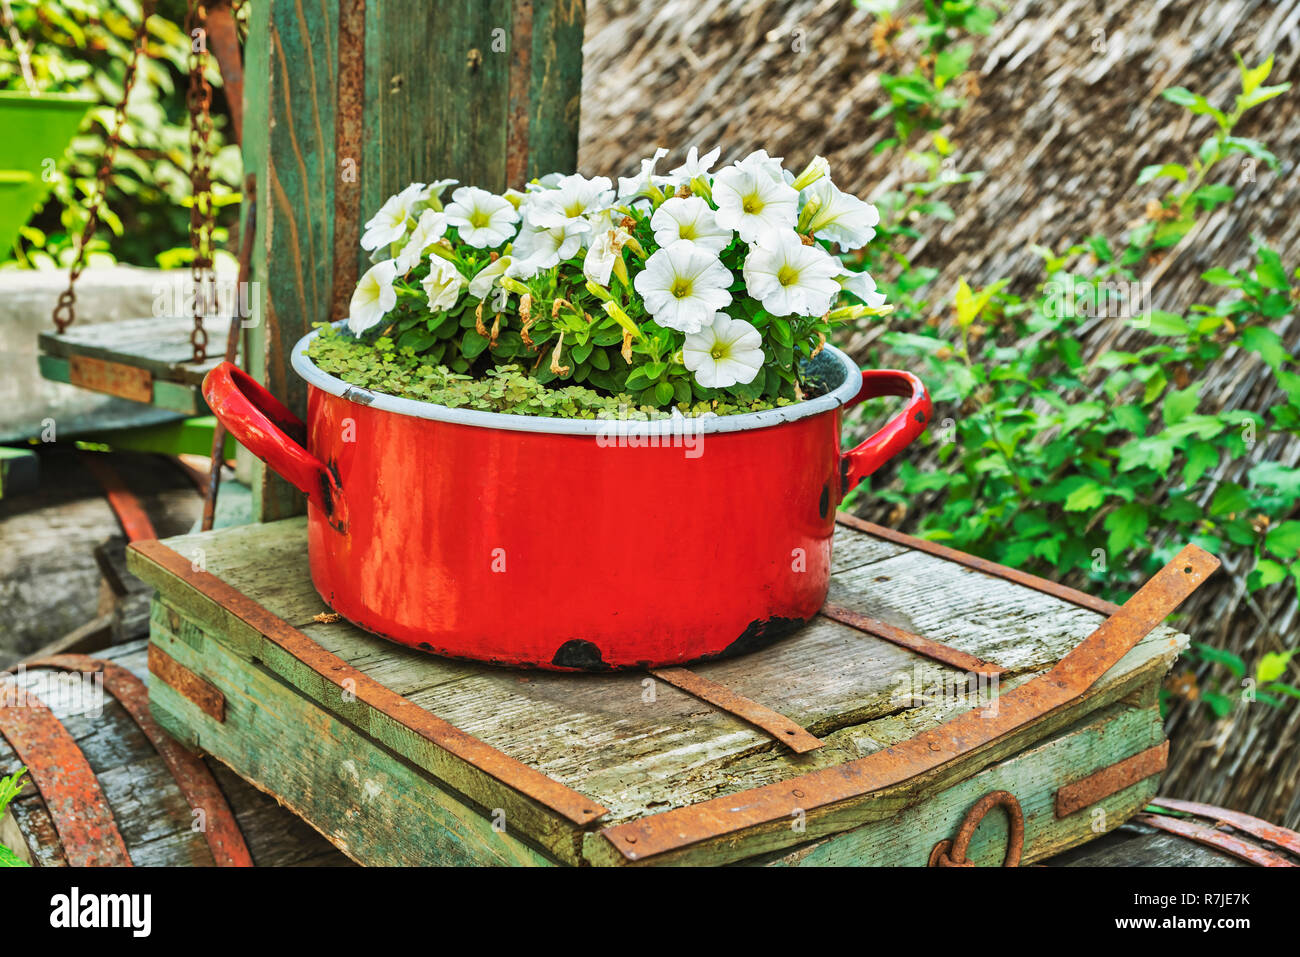 White petunias are planted in a red saucepan. The saucepan stands on an old scale, Tihany, Veszprem county, Central Transdanubia, Hungary, Europe - Stock Image